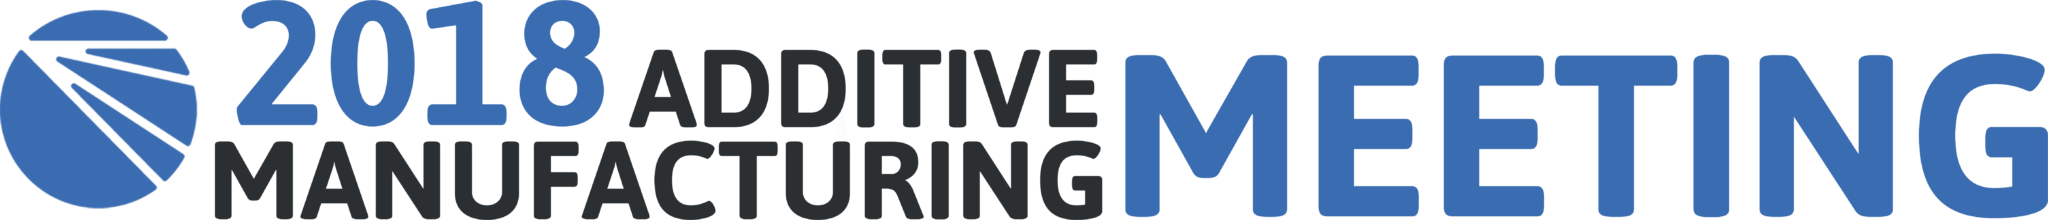 Additive Manufacturing Meeting 2018